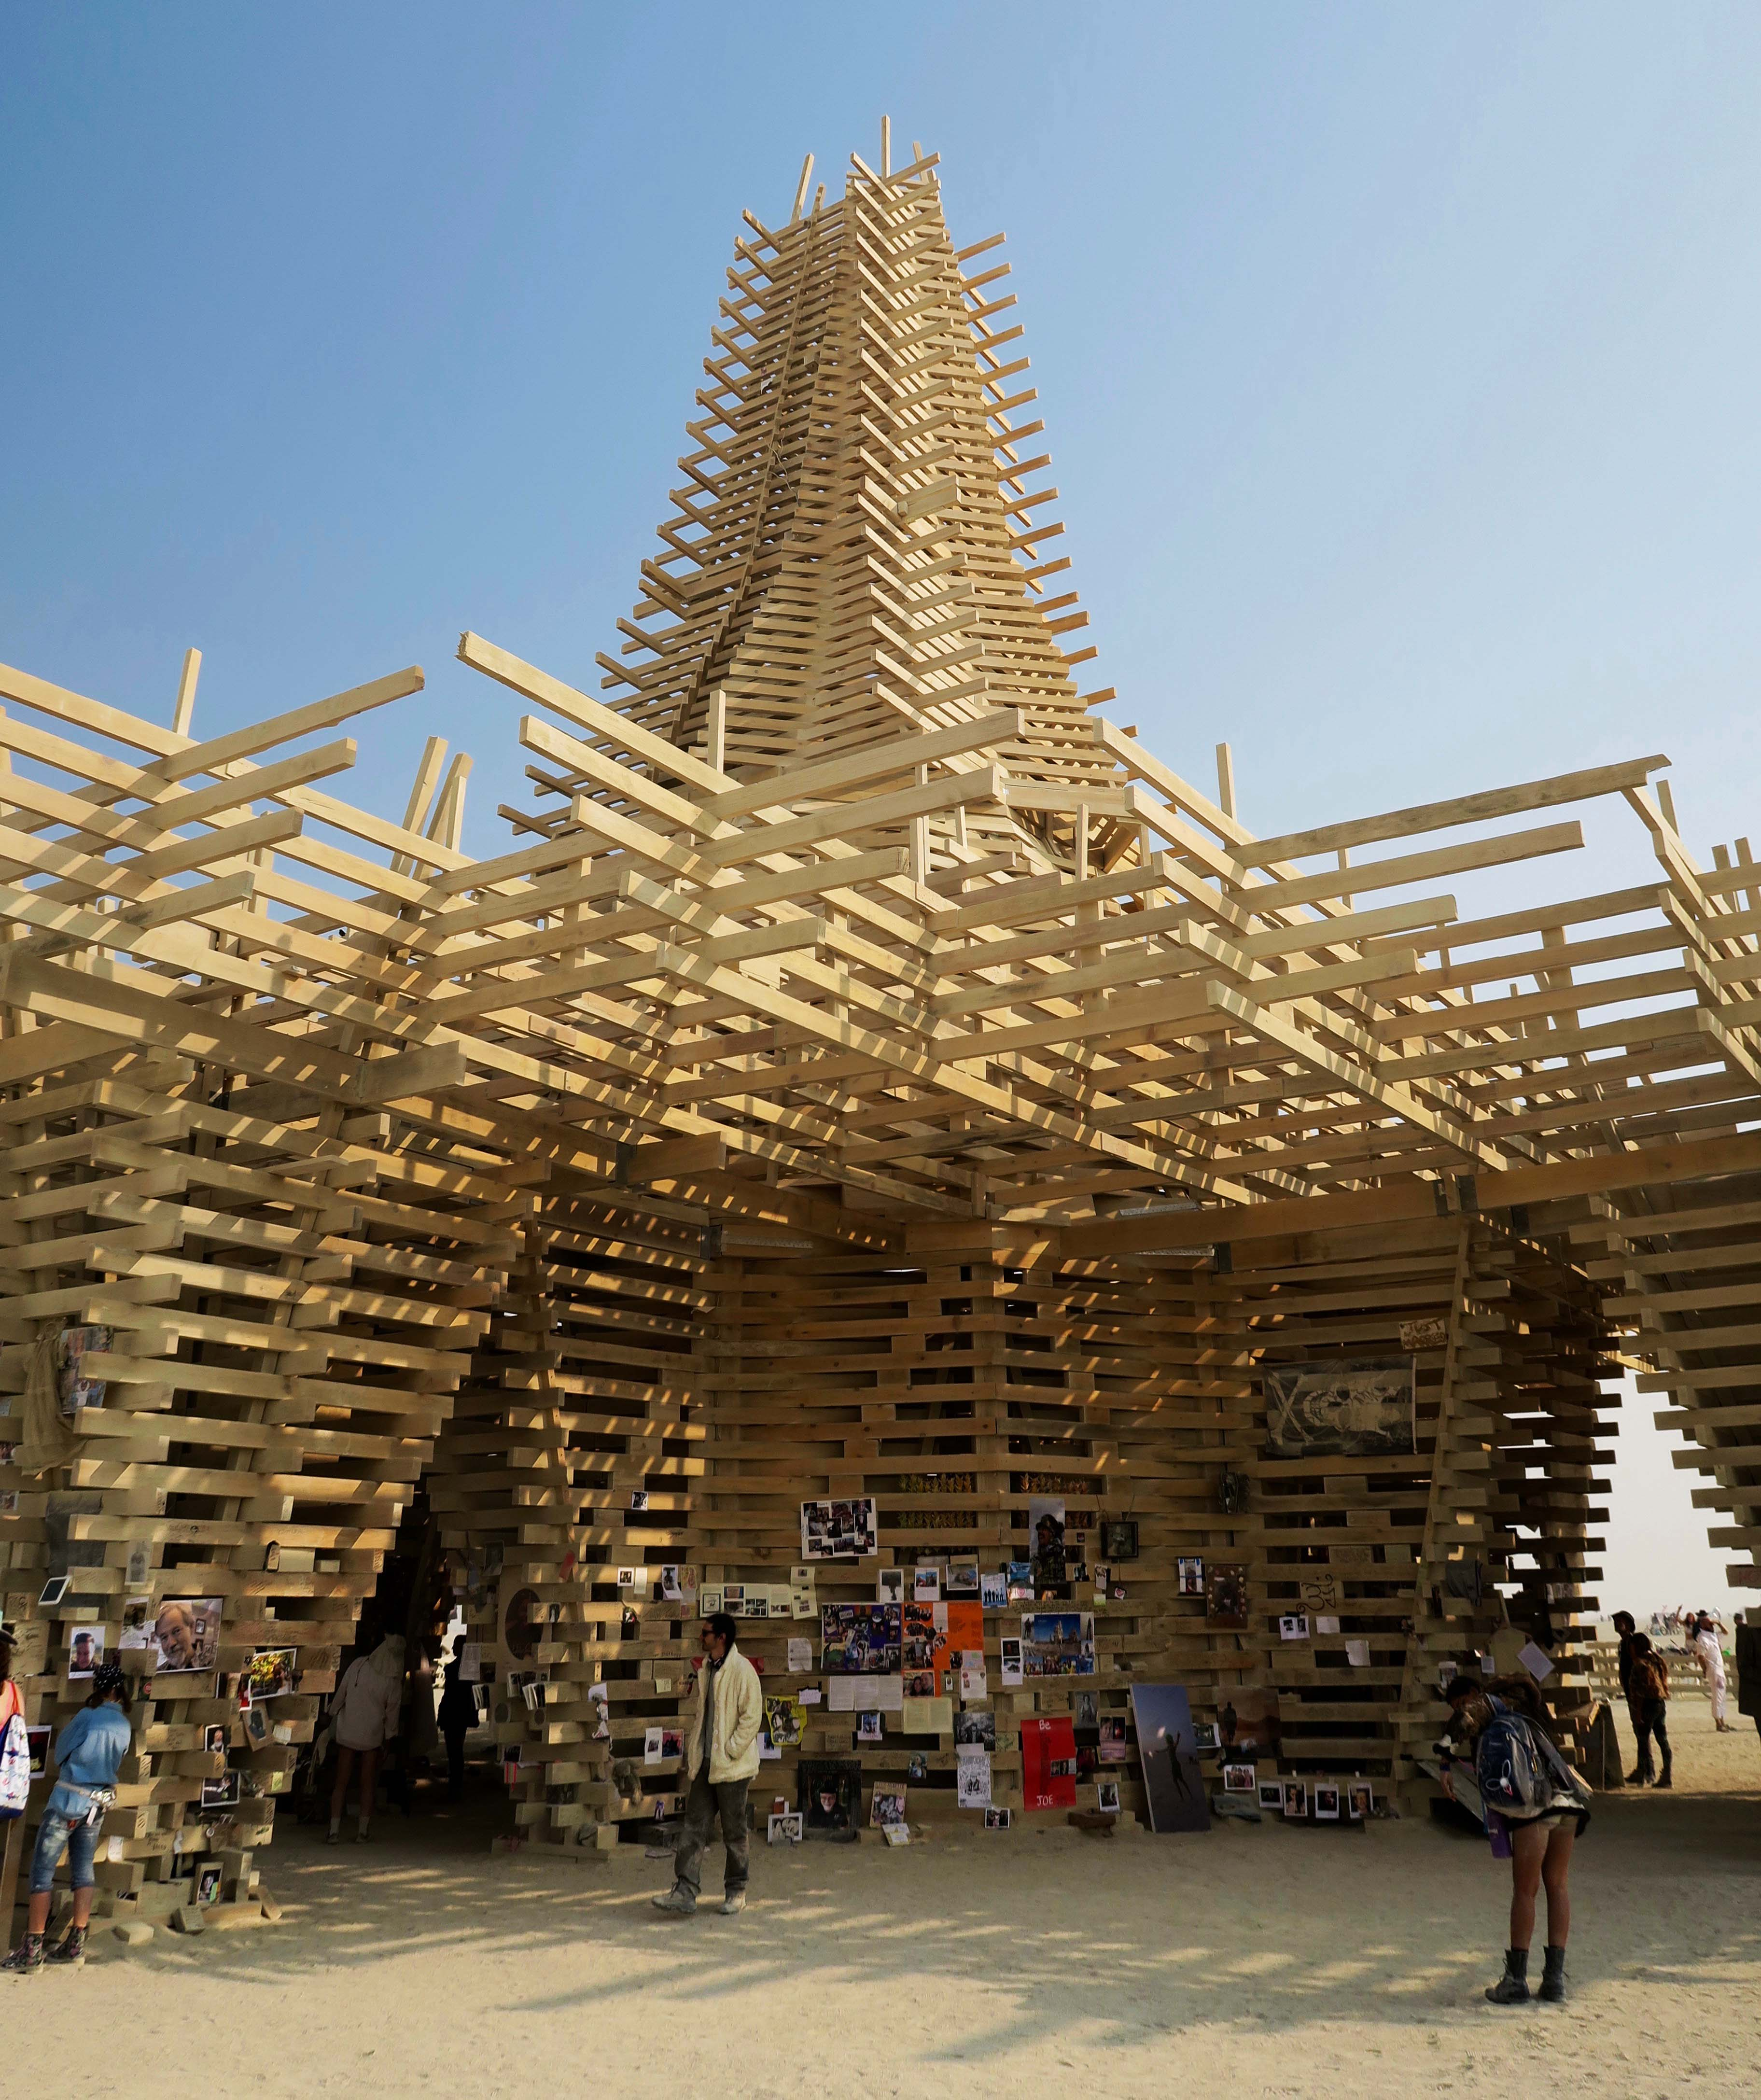 Side view of Temple at Burning Man 2017